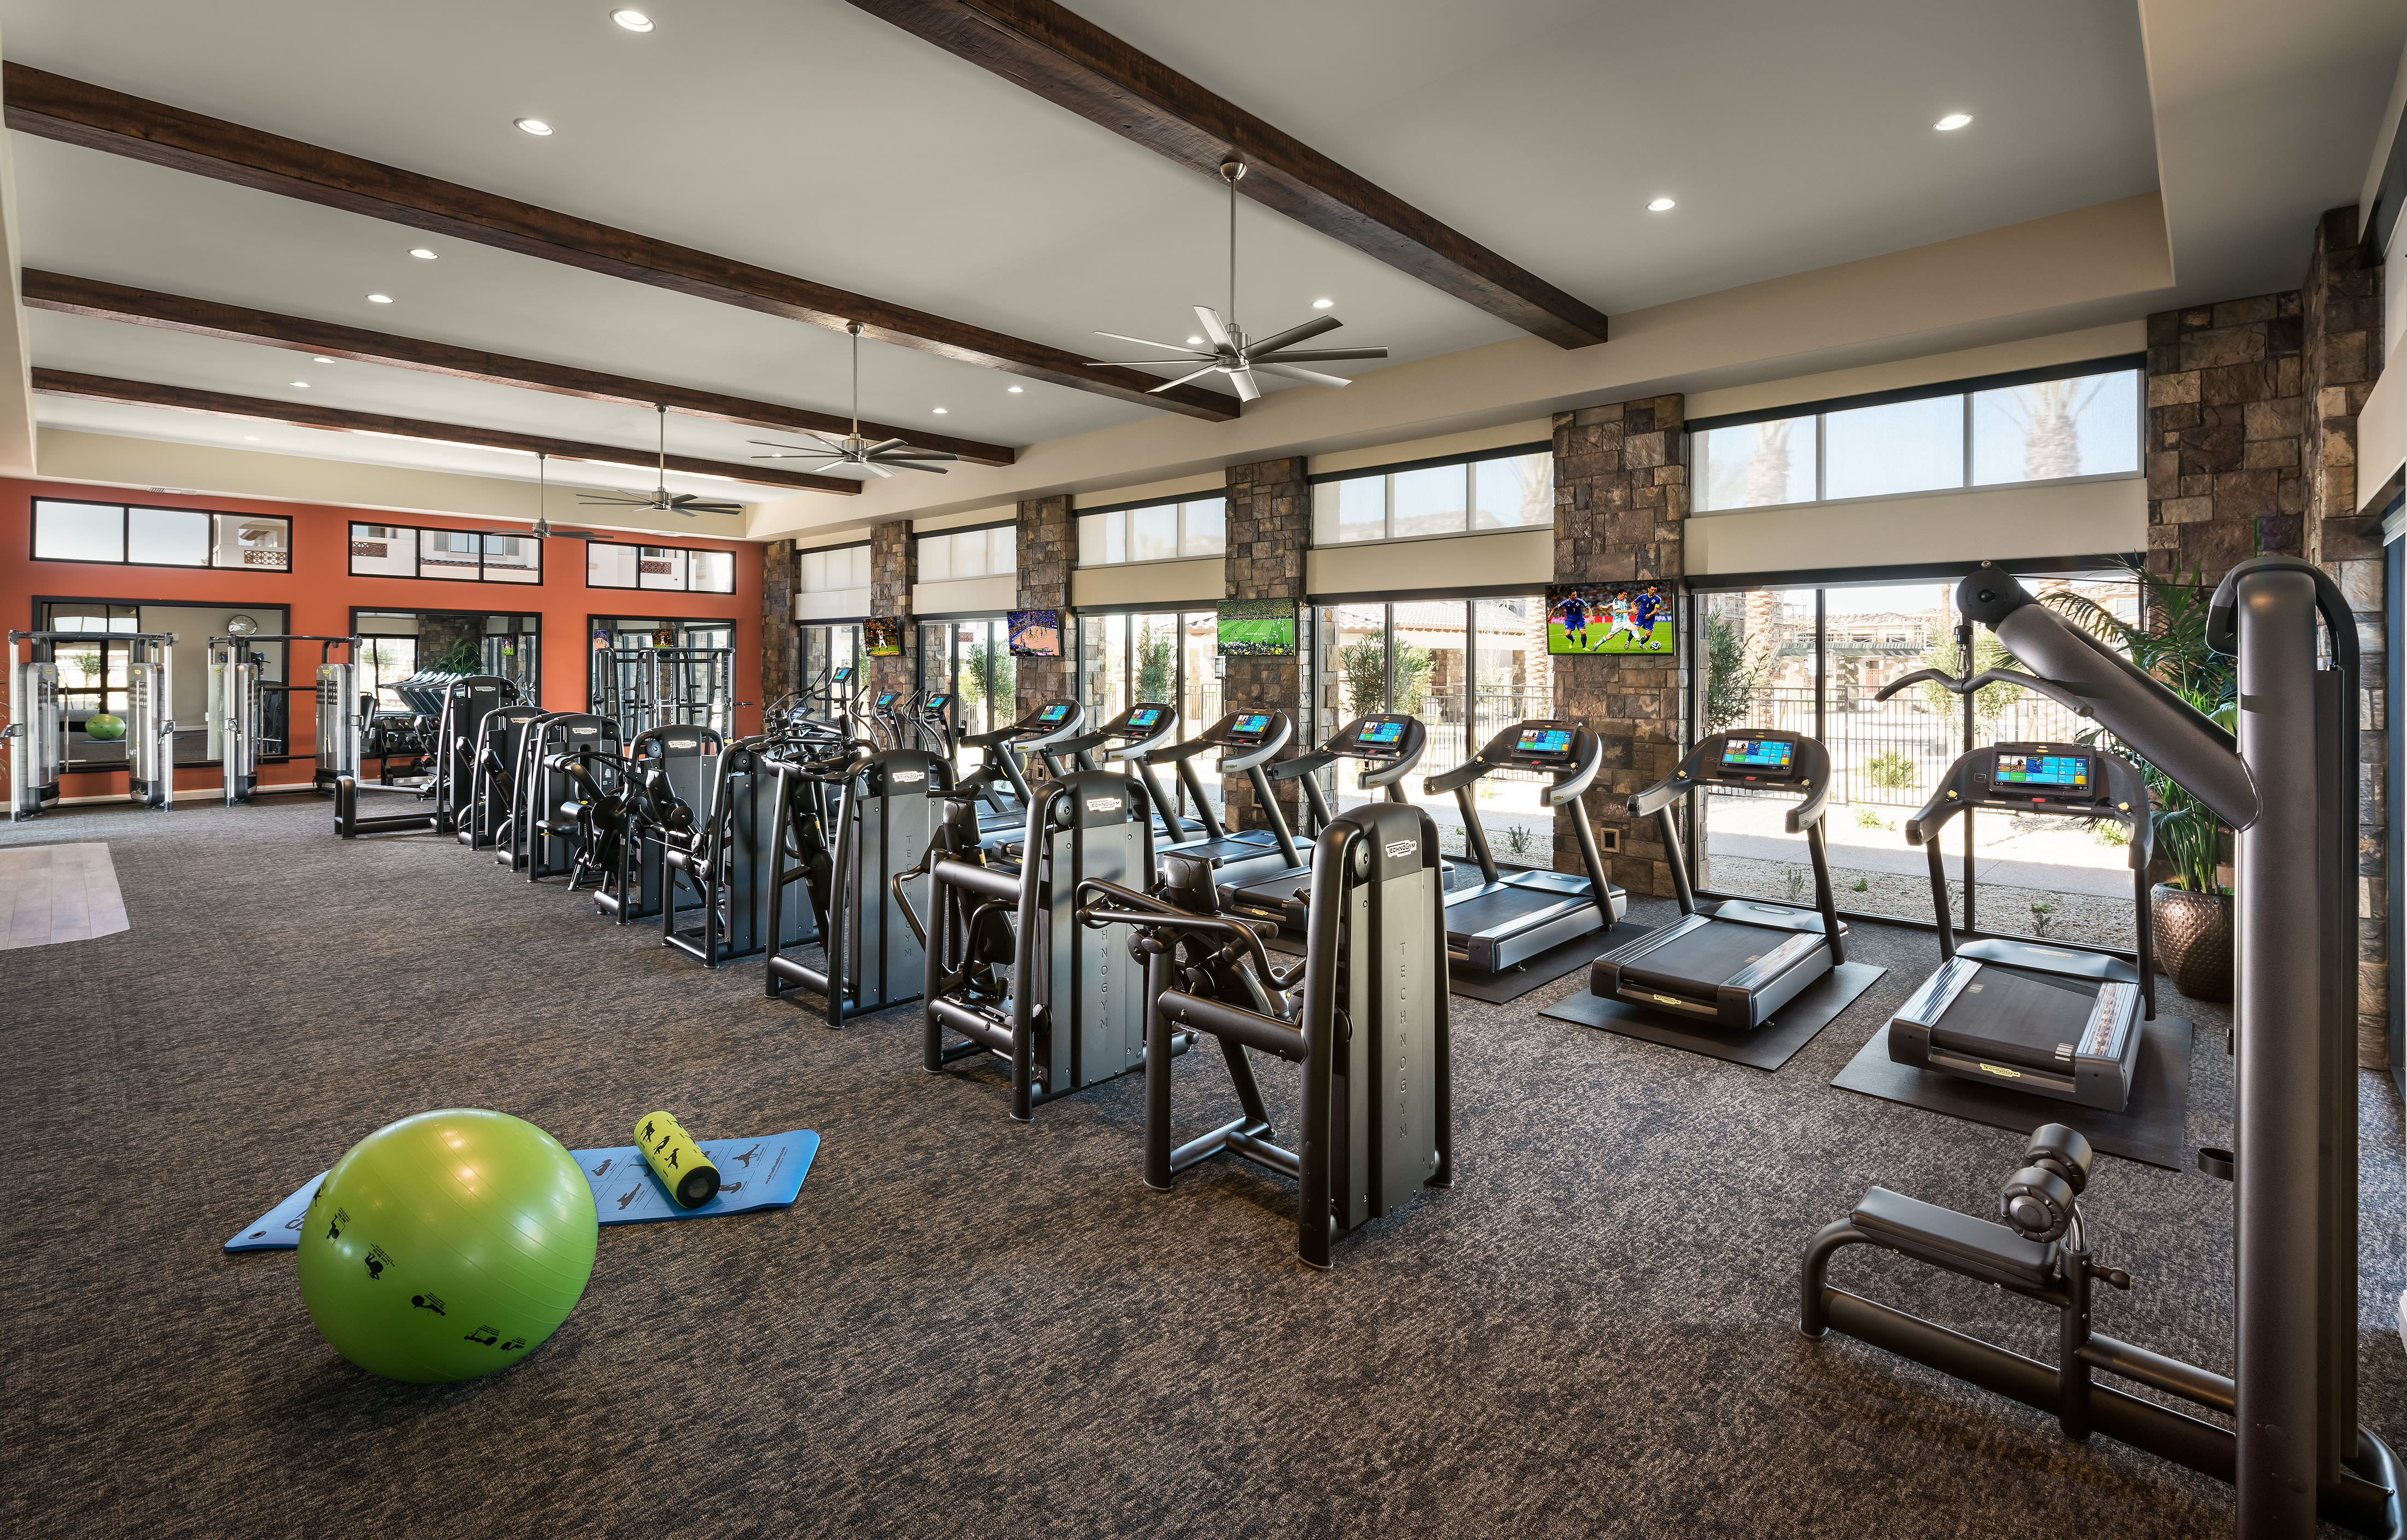 Fitness center at San Villante in Mesa, Arizona